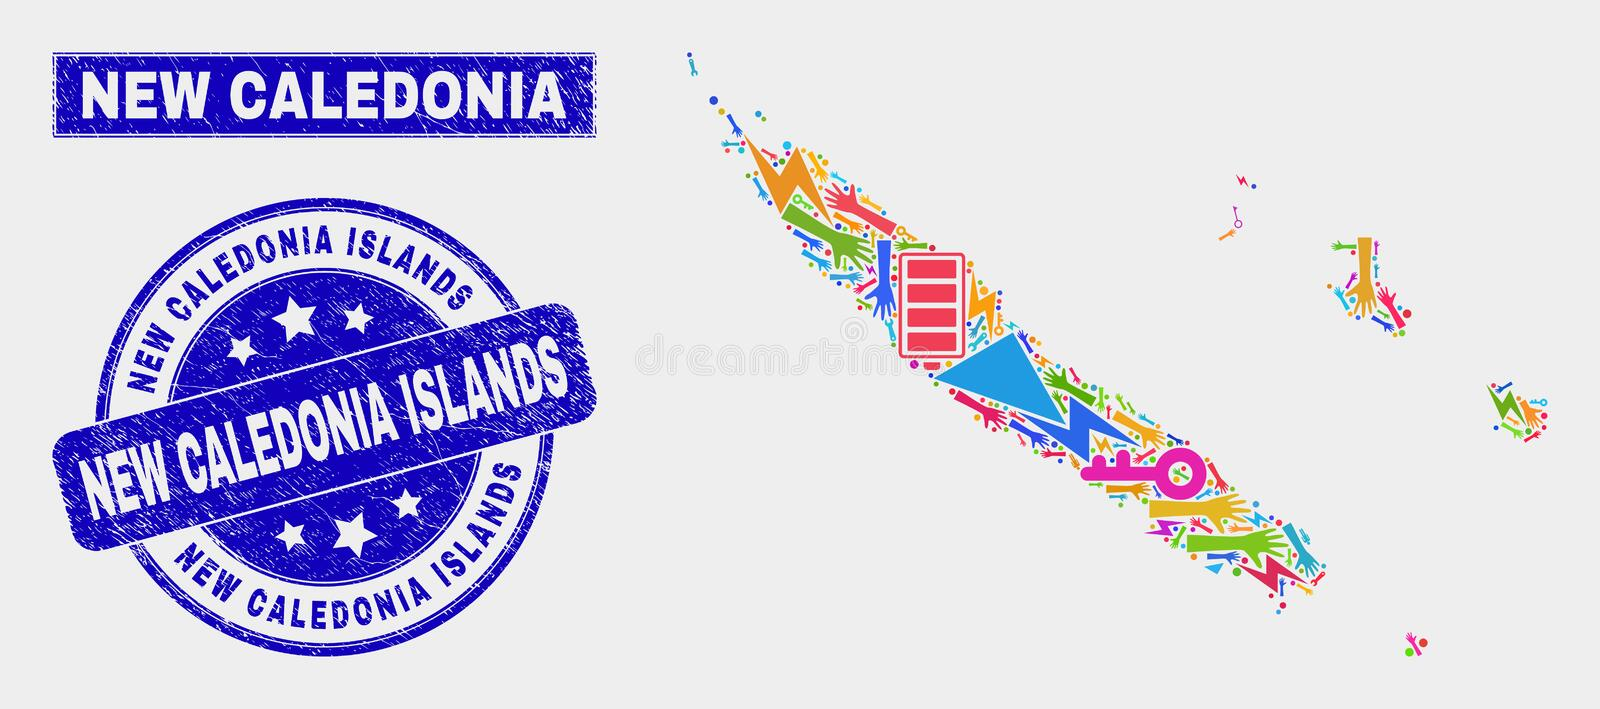 Collage Technology New Caledonia Islands Map and Scratched New Caledonia Islands Stamp royalty free illustration